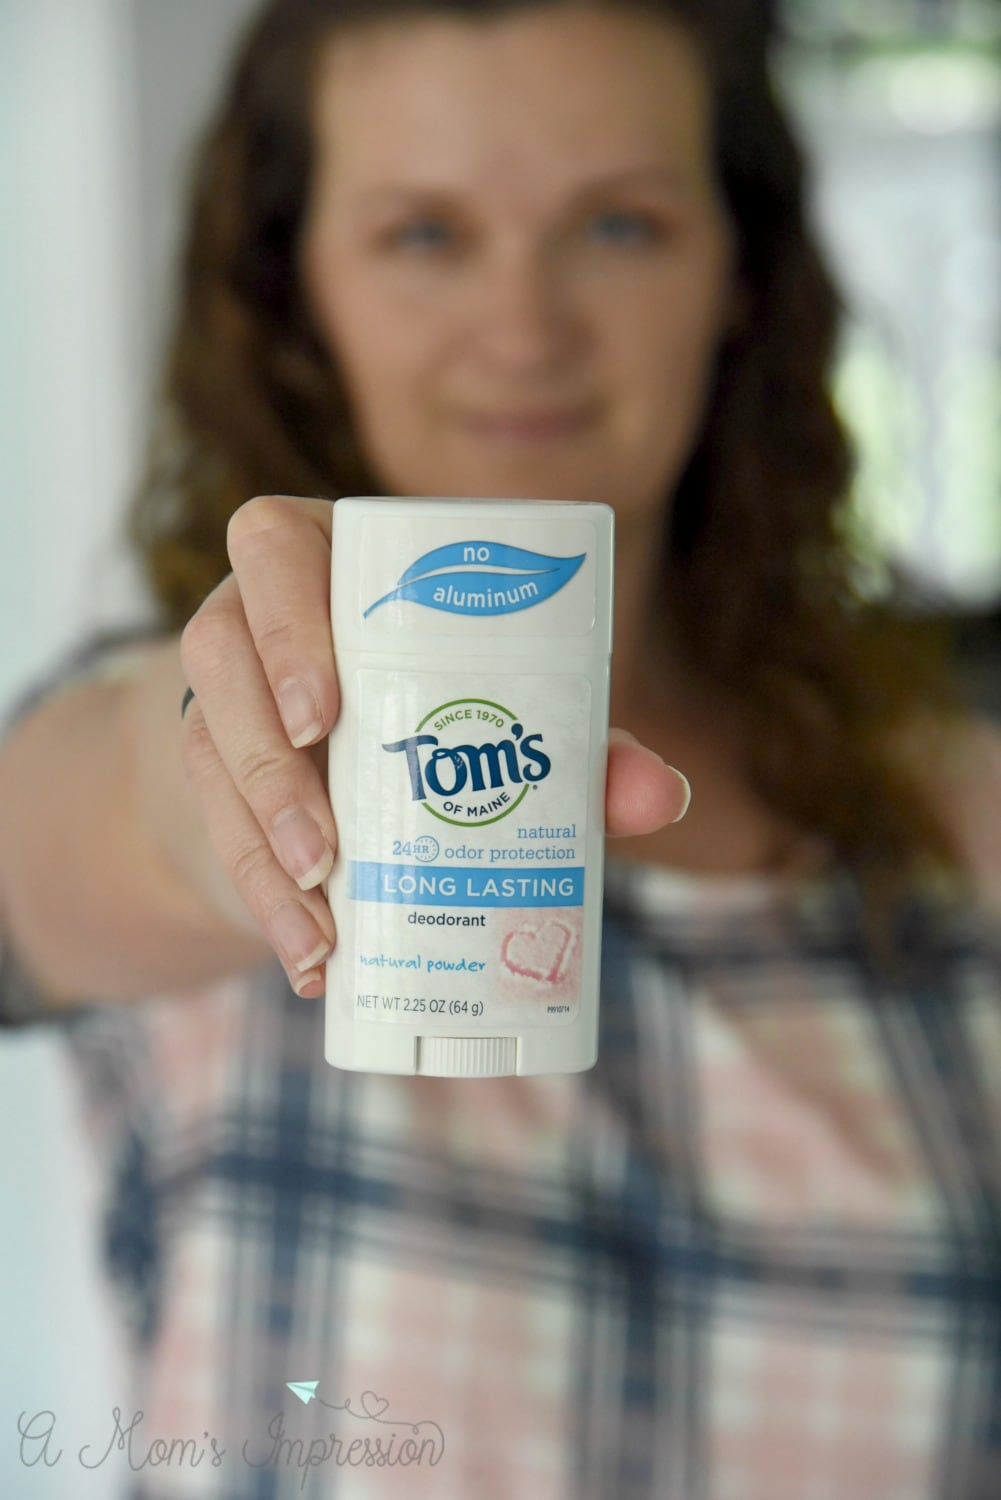 TOms of main deodorant